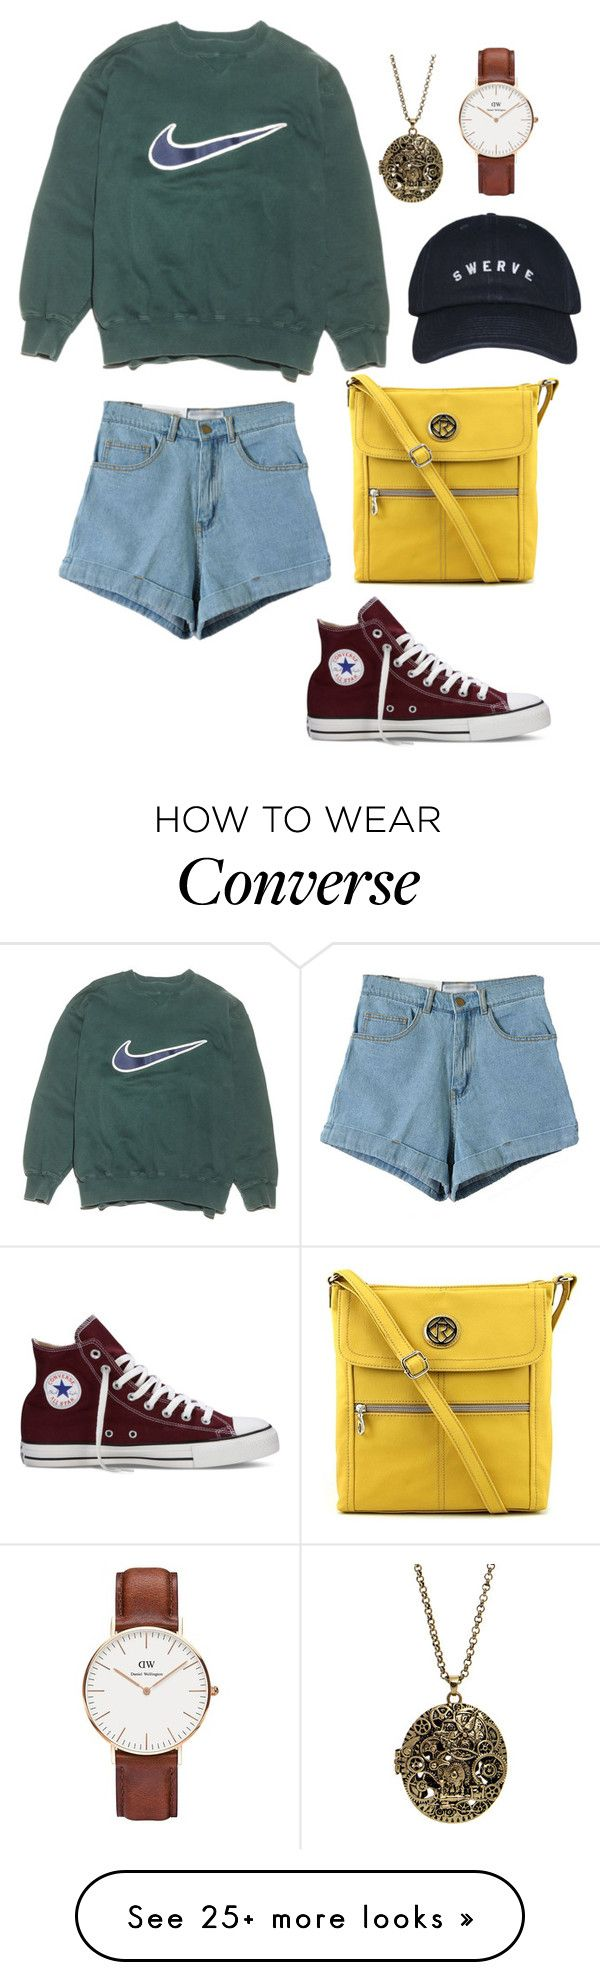 """""""Untitled #405"""" by whitep on Polyvore featuring NIKE, Converse, Relic, Daniel Wellington, women's clothing, women's fashion, women, female, woman and misses"""